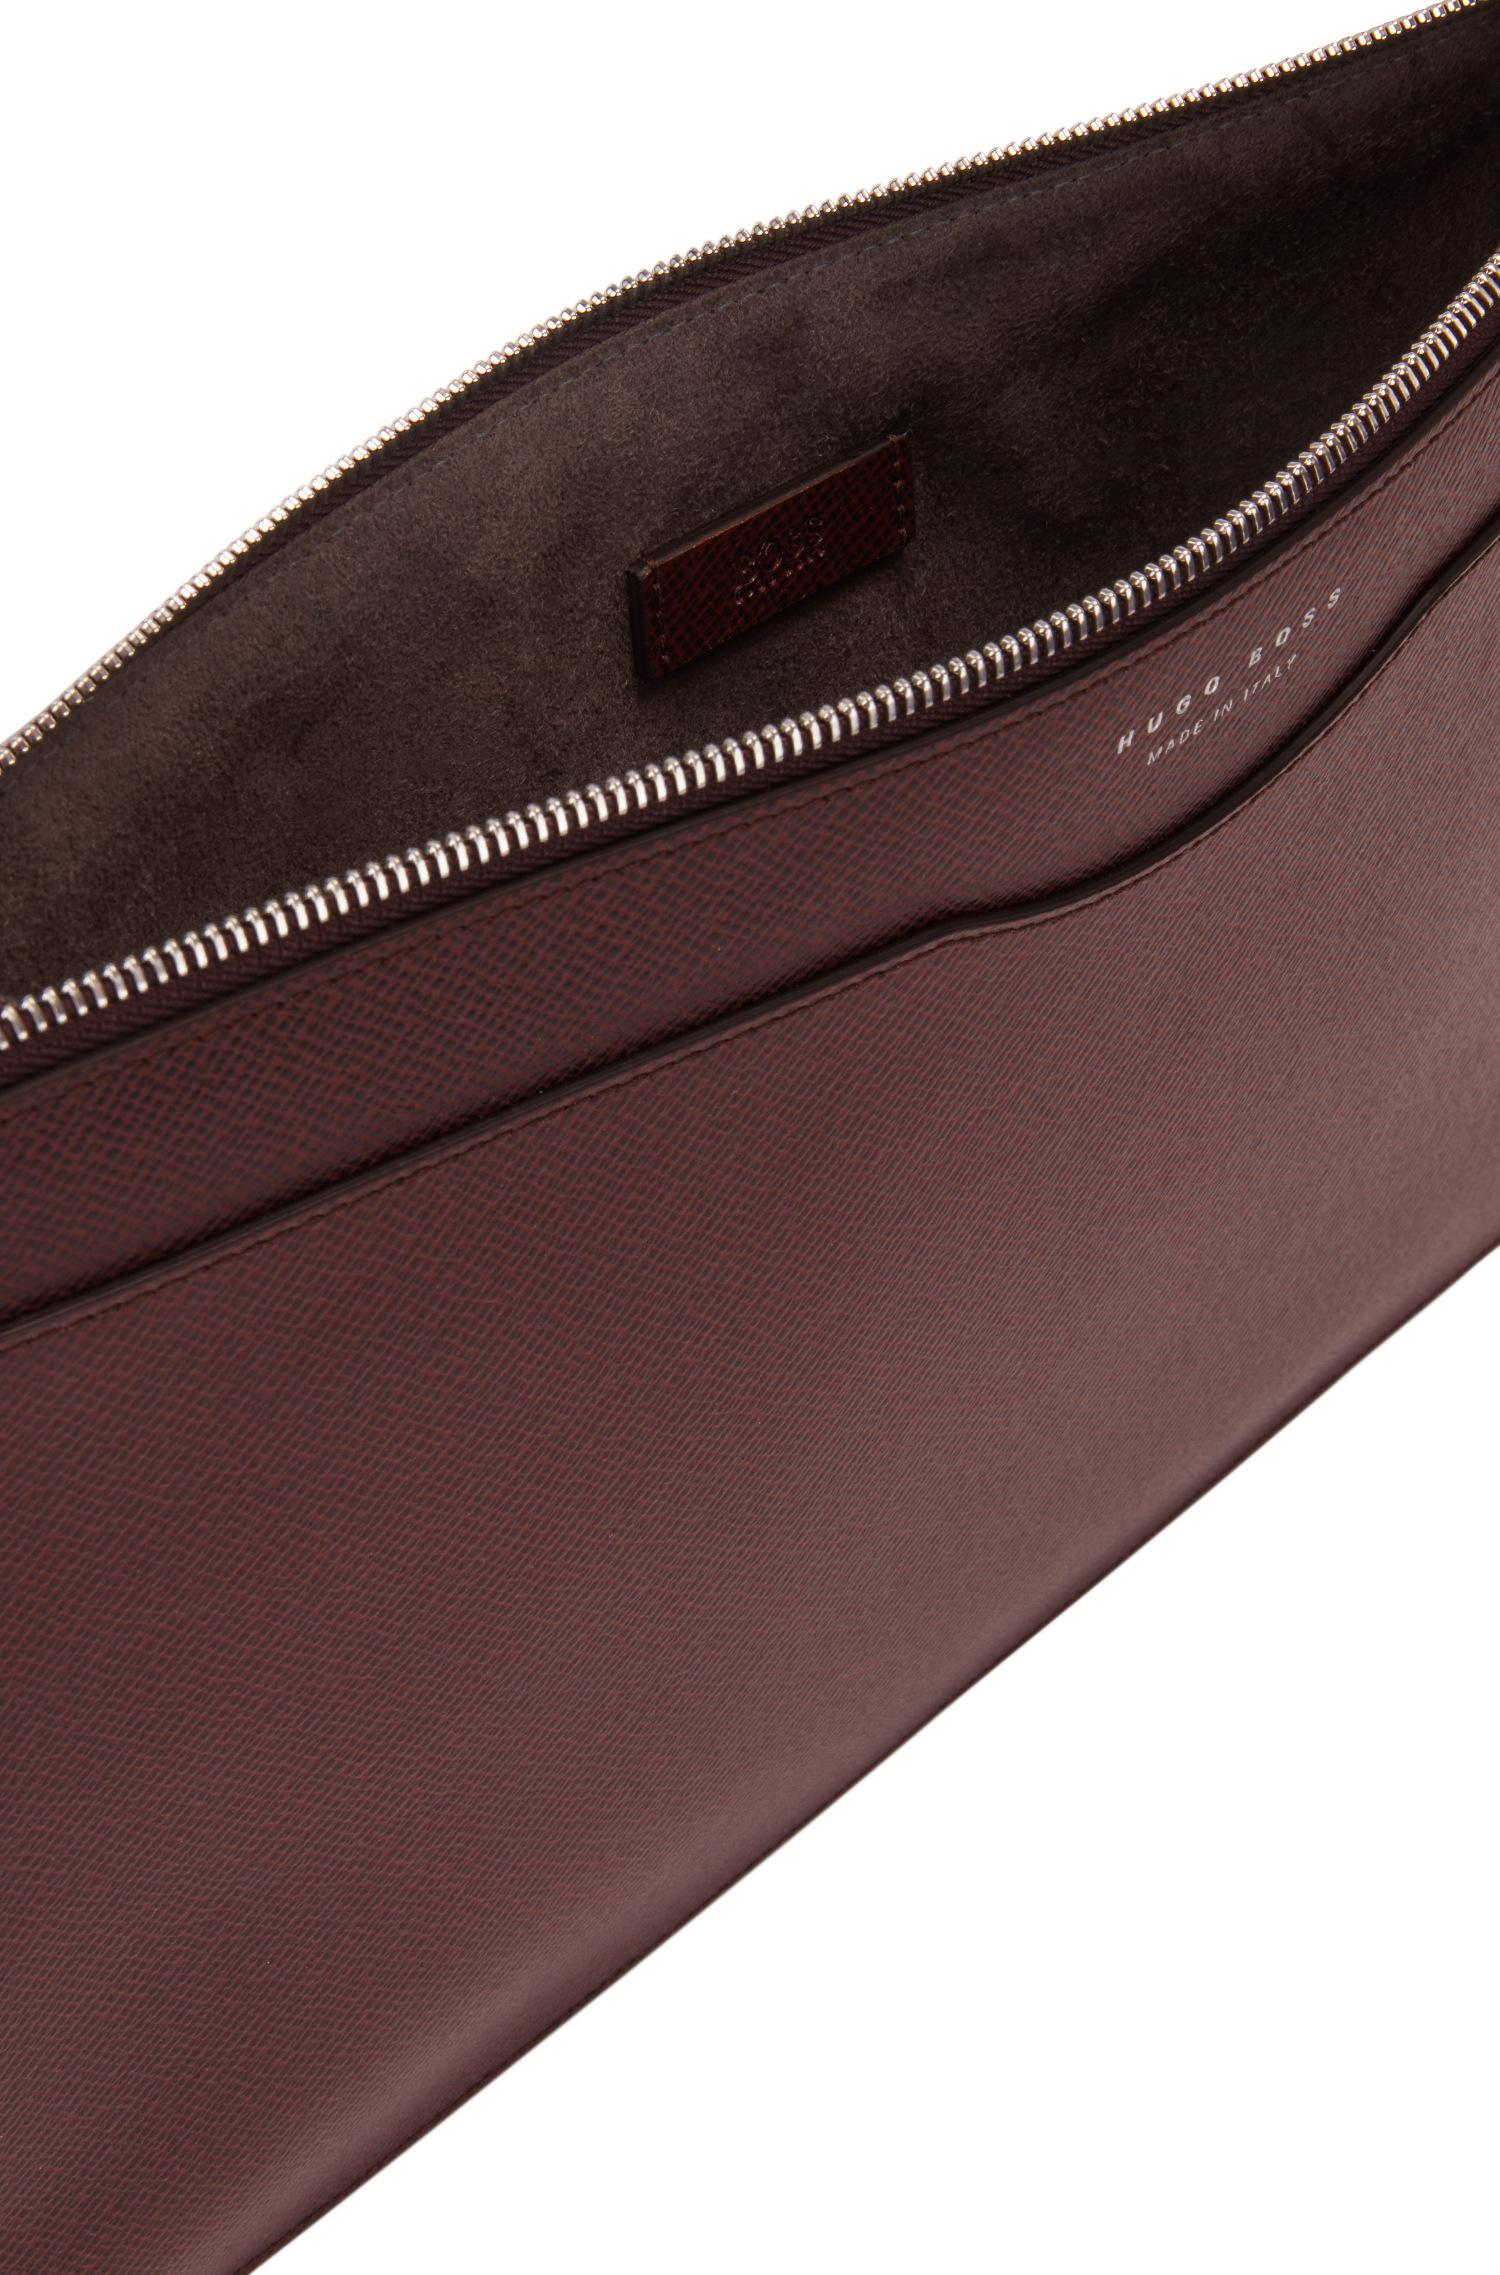 f8d223f974 BOSS Signature Collection Document Case In Palmellato Leather in Red ...